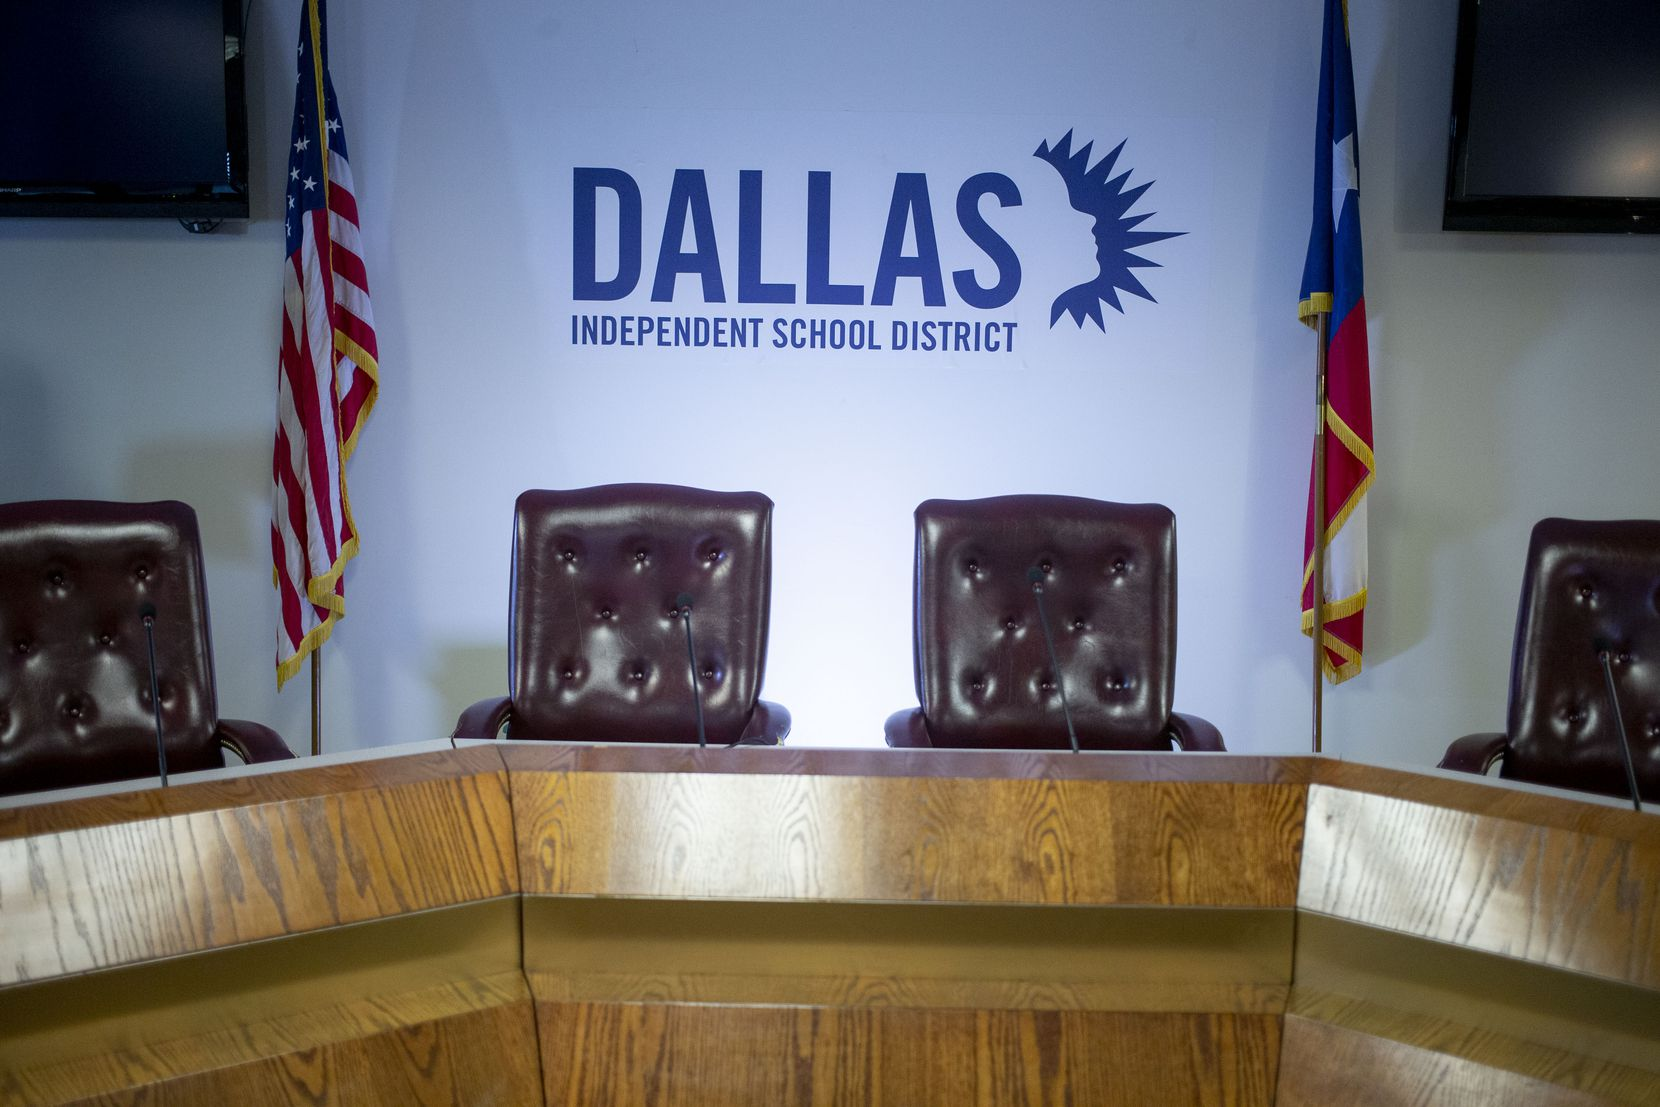 The Dallas school district plans to reverse course on a controversial partnership that converted some pre-K classrooms into charters.